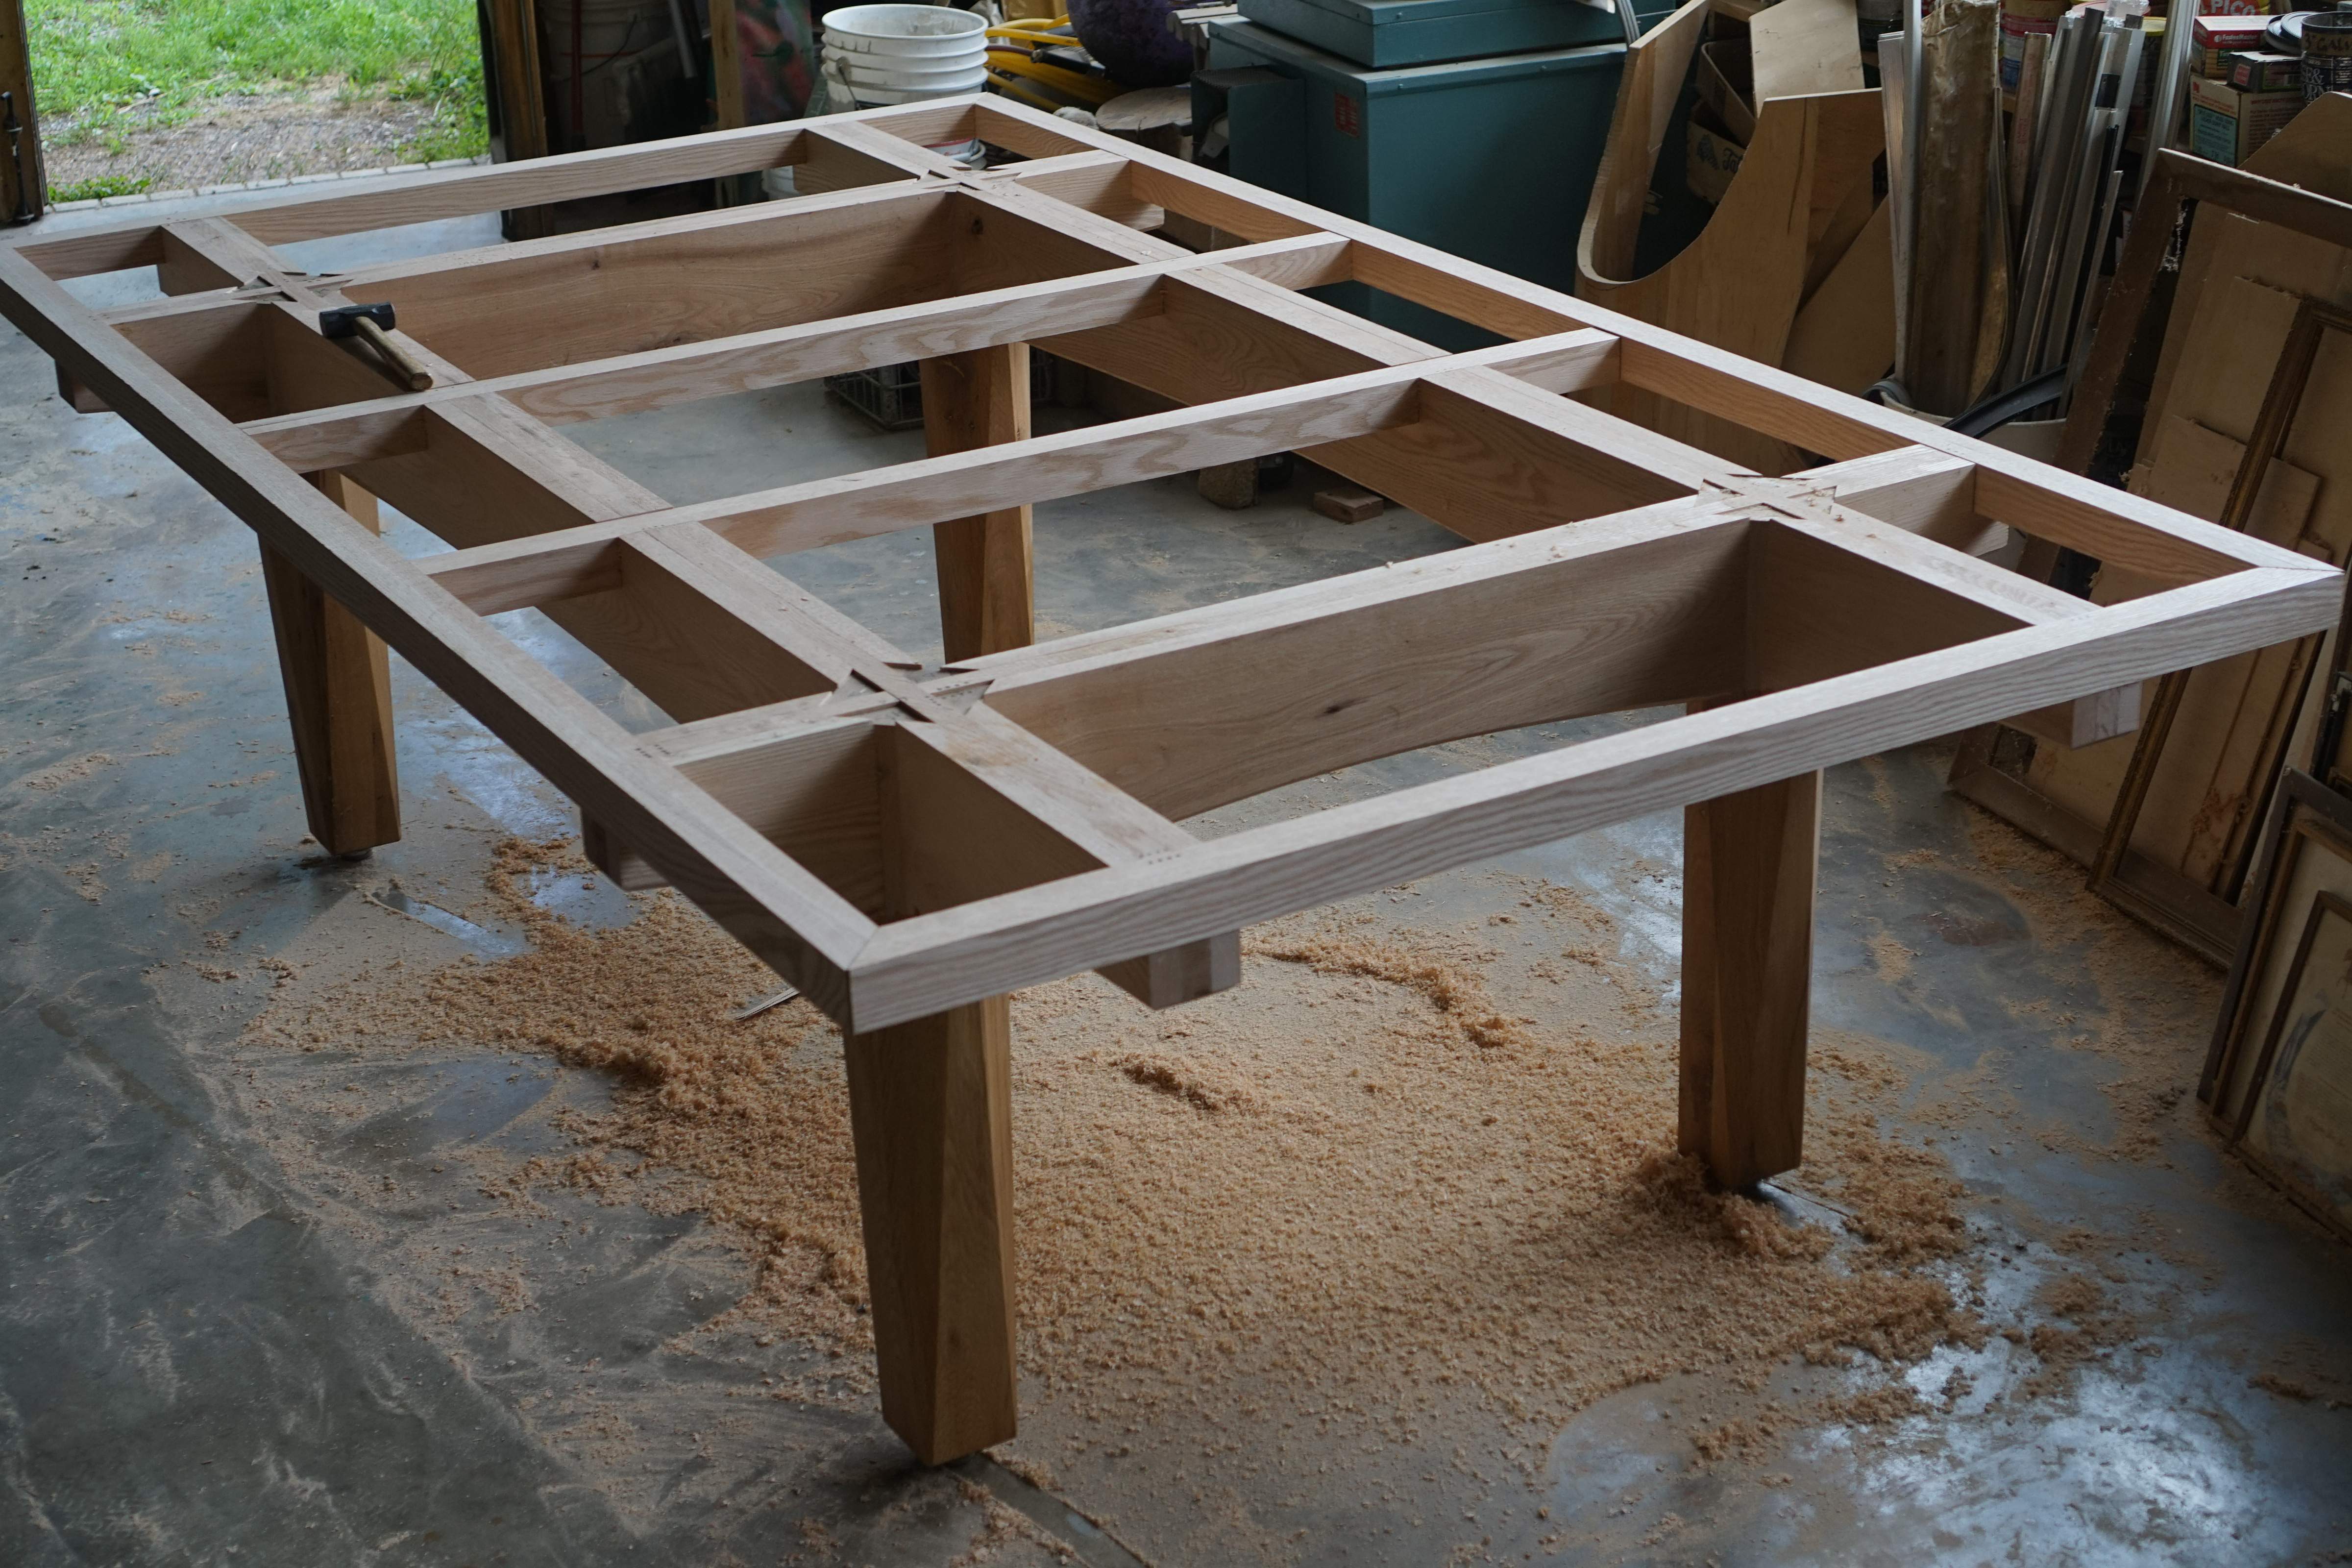 sp-pool-table-frame – Clarke Olsen Design